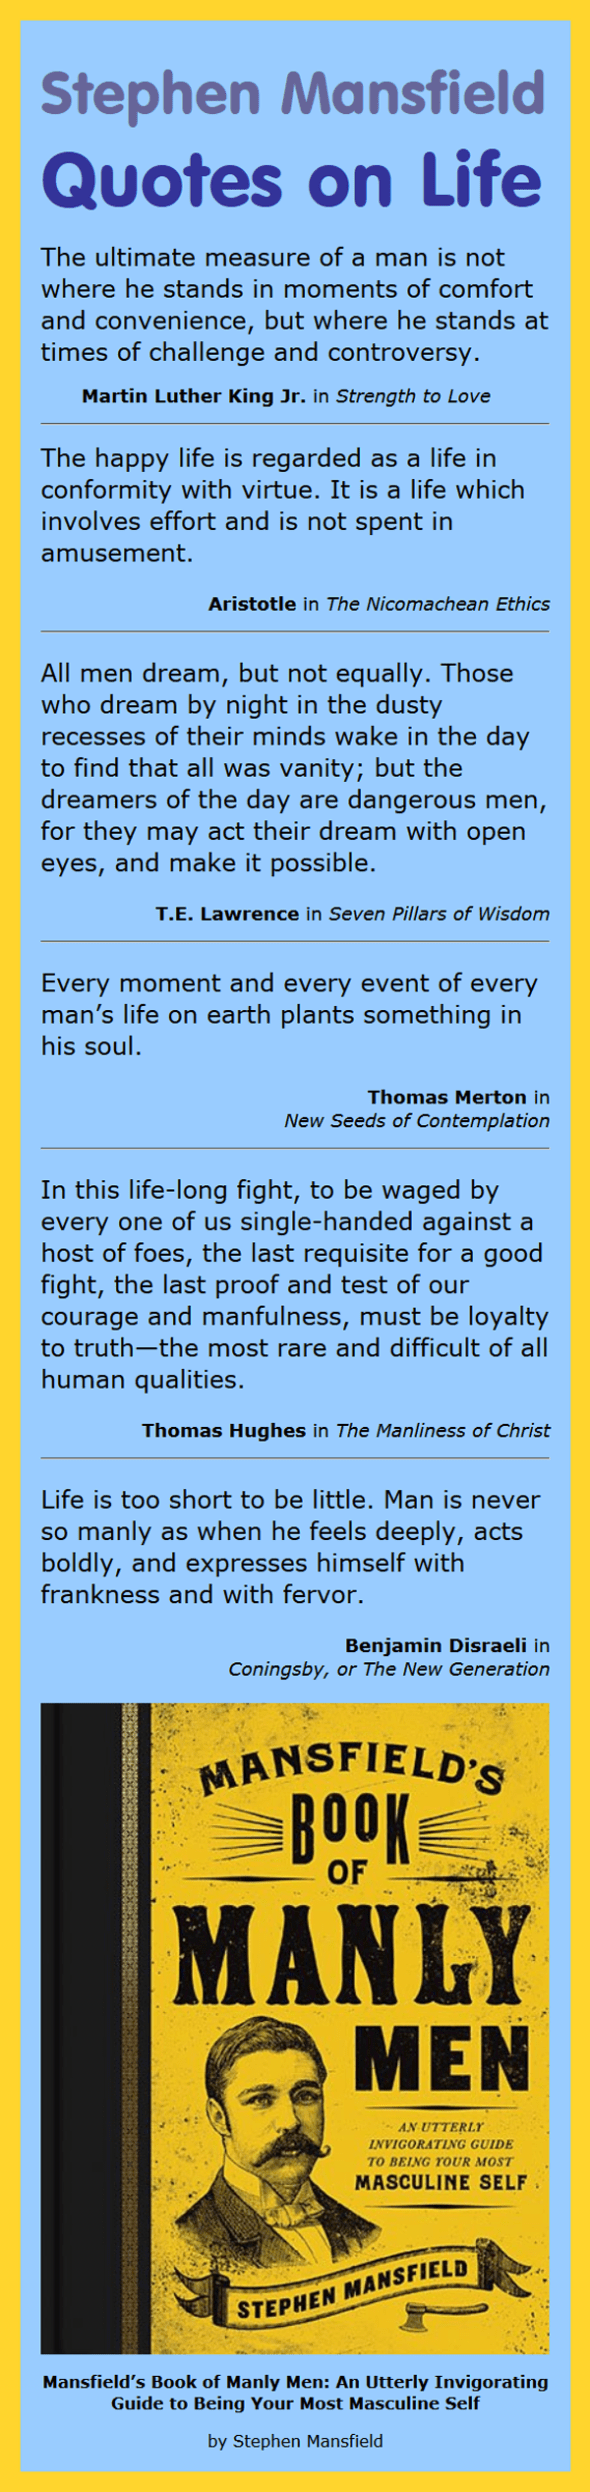 Book Quotes About Life Stephen Mansfield Quotes On Life  Infographic A Day